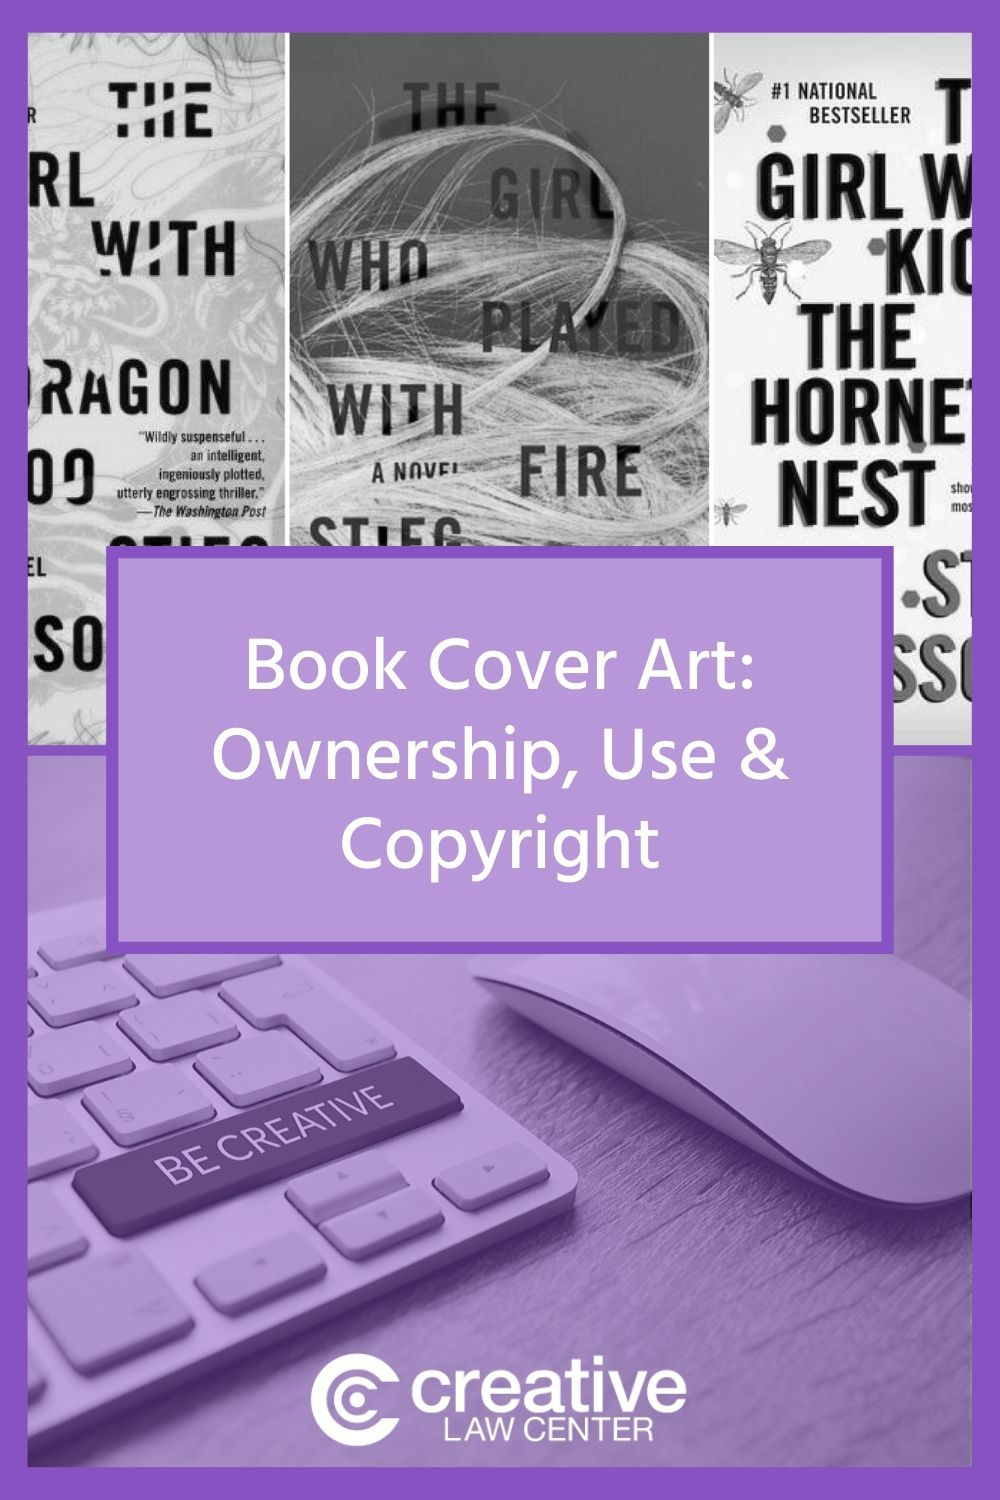 Book Cover Art: Ownership, Use & Copyright